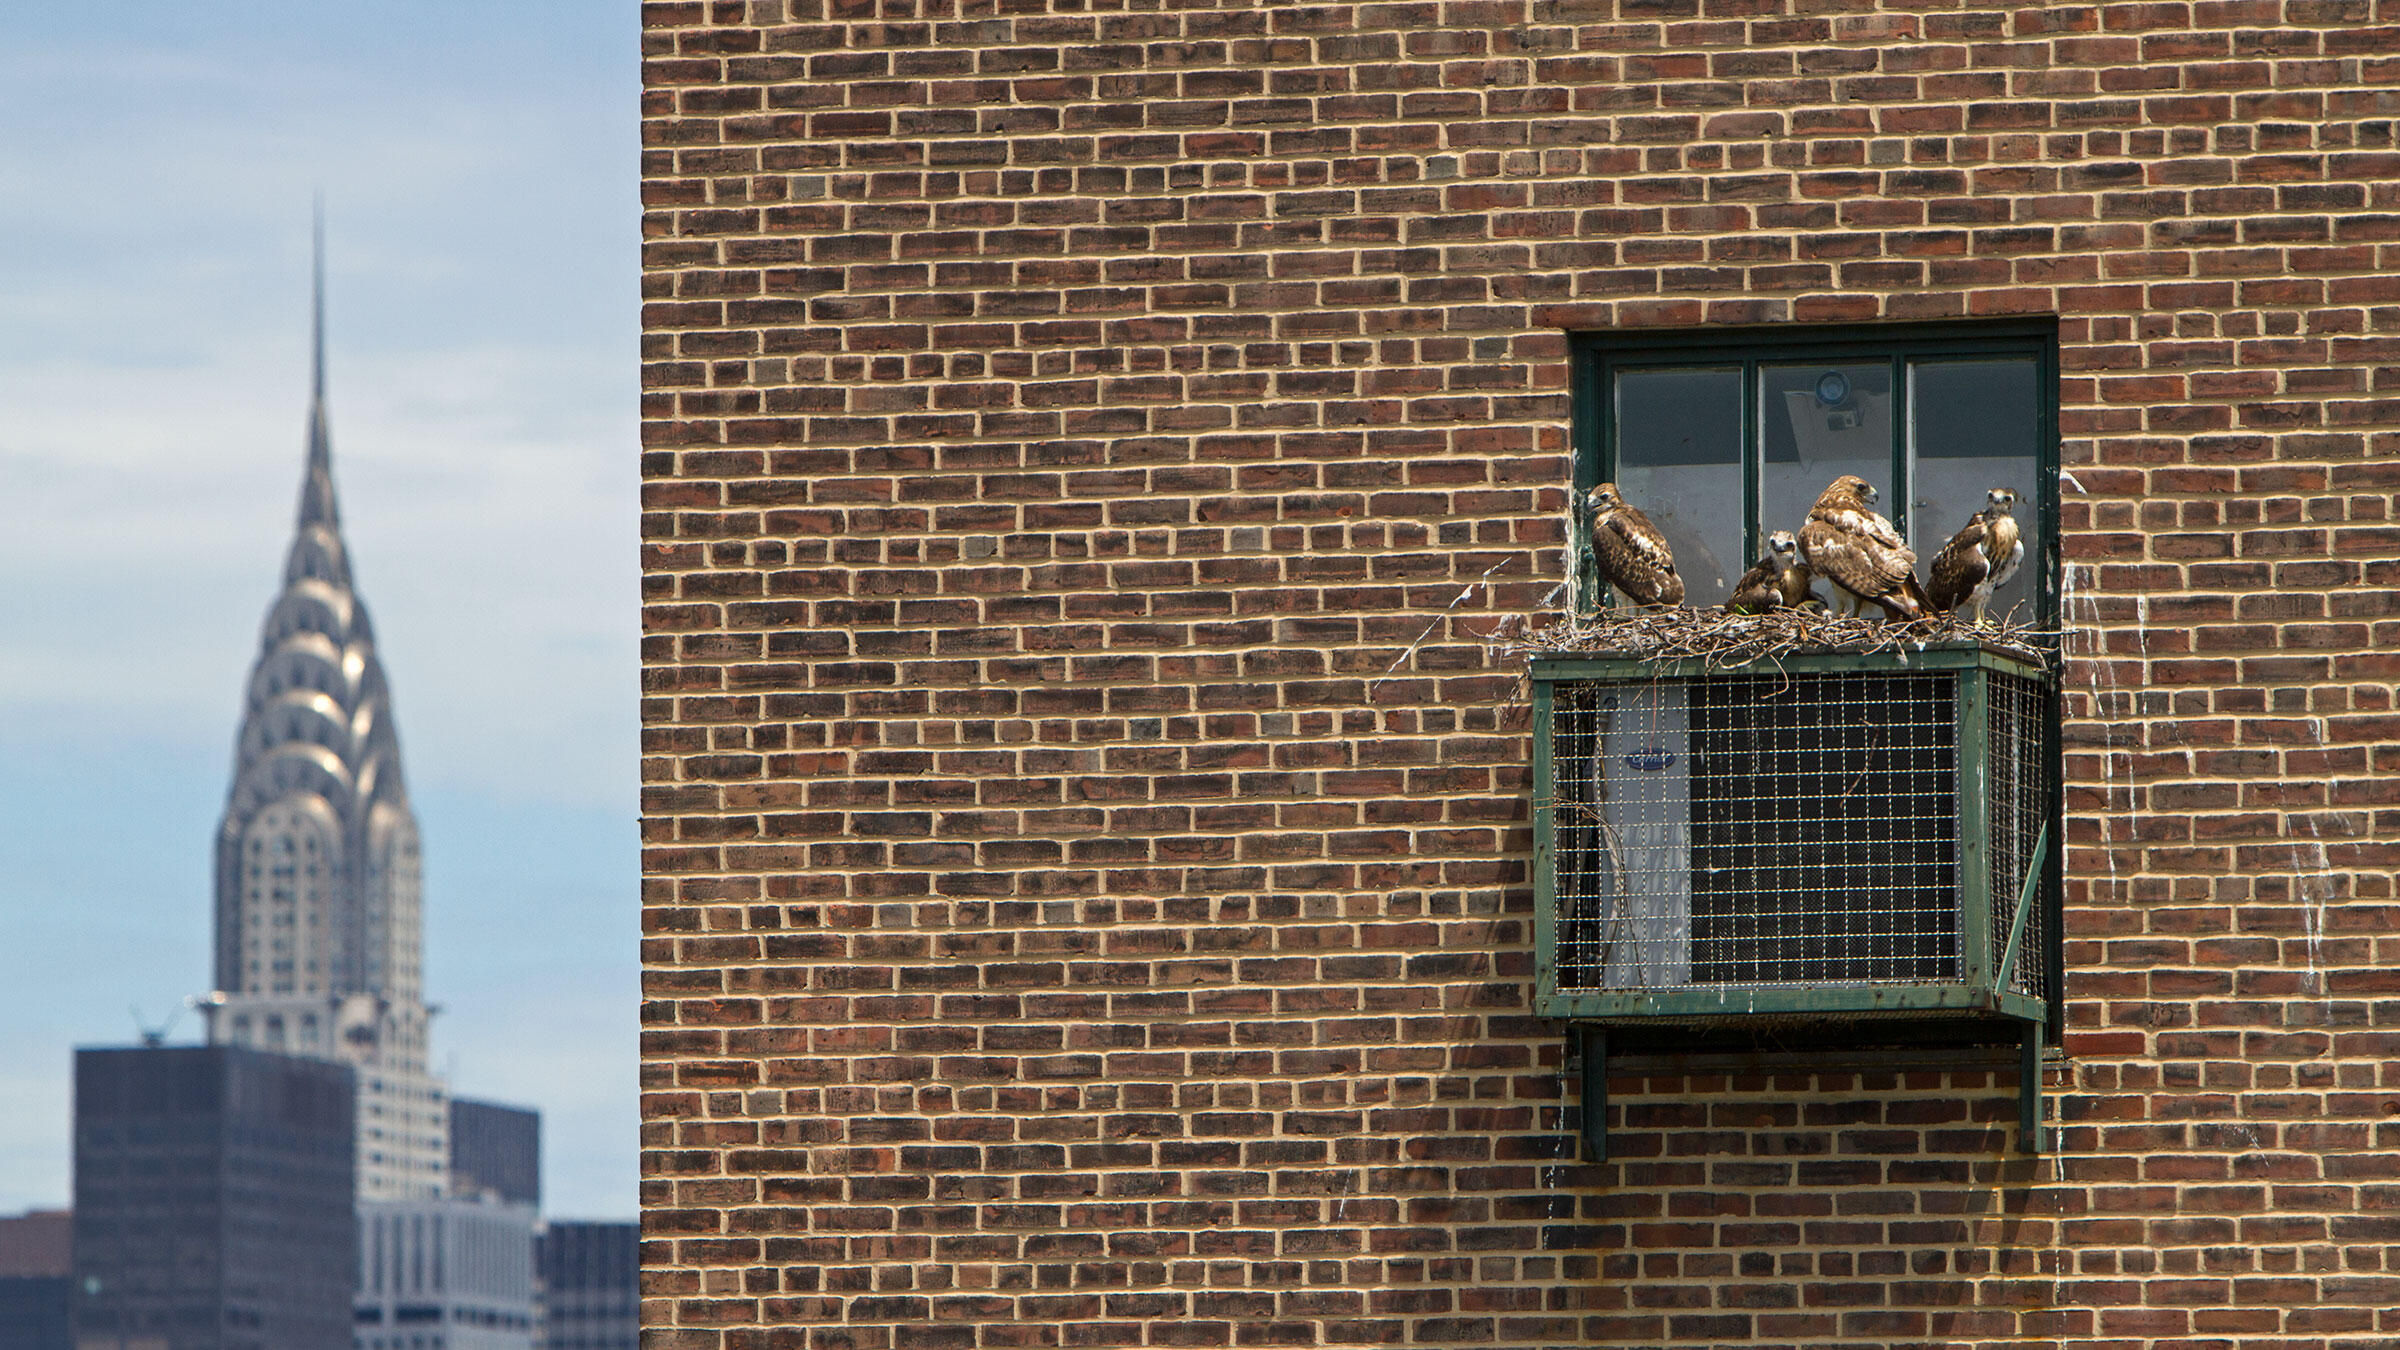 The number of known Red-tailed Hawk nests in Manhattan has more than doubled in the past six years. The birds usually stick to trees, but will sometimes lay claim to A/C units, fire escapes, and balconies. Francois Portmann